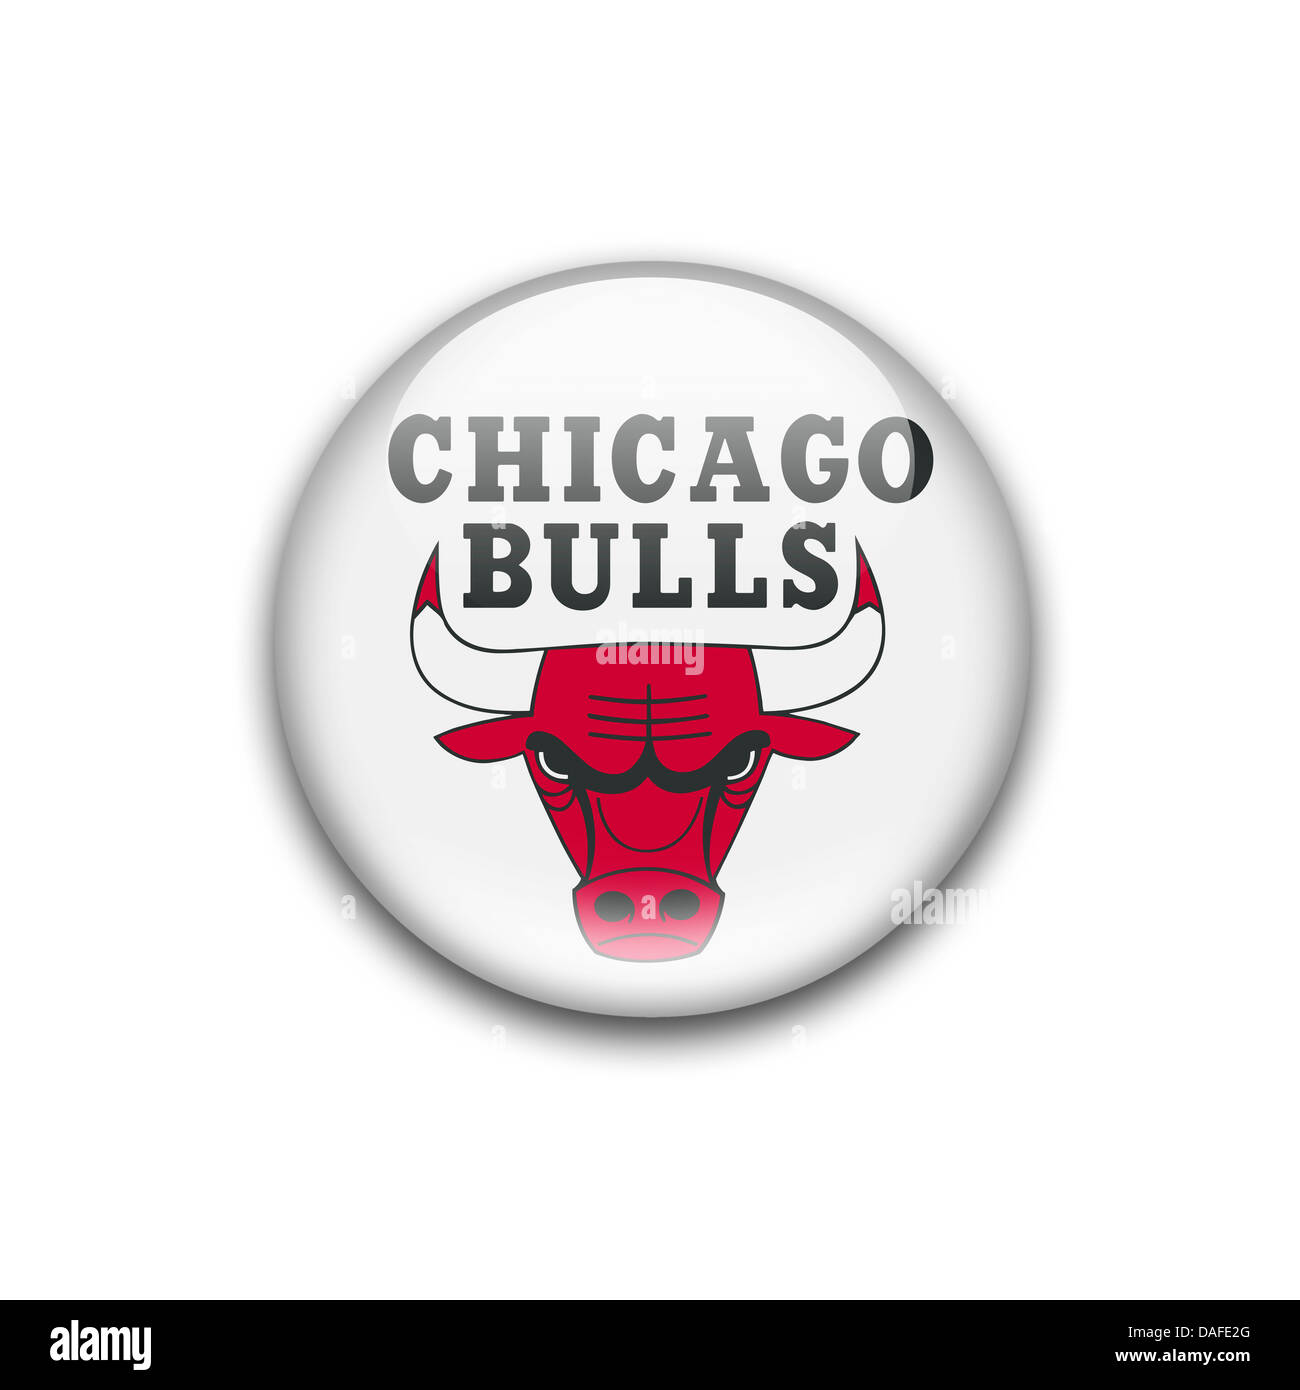 95+ Art Of The Day Chicago Bulls Logo W Mickey Mouse Hands. The ... 6d1385be886